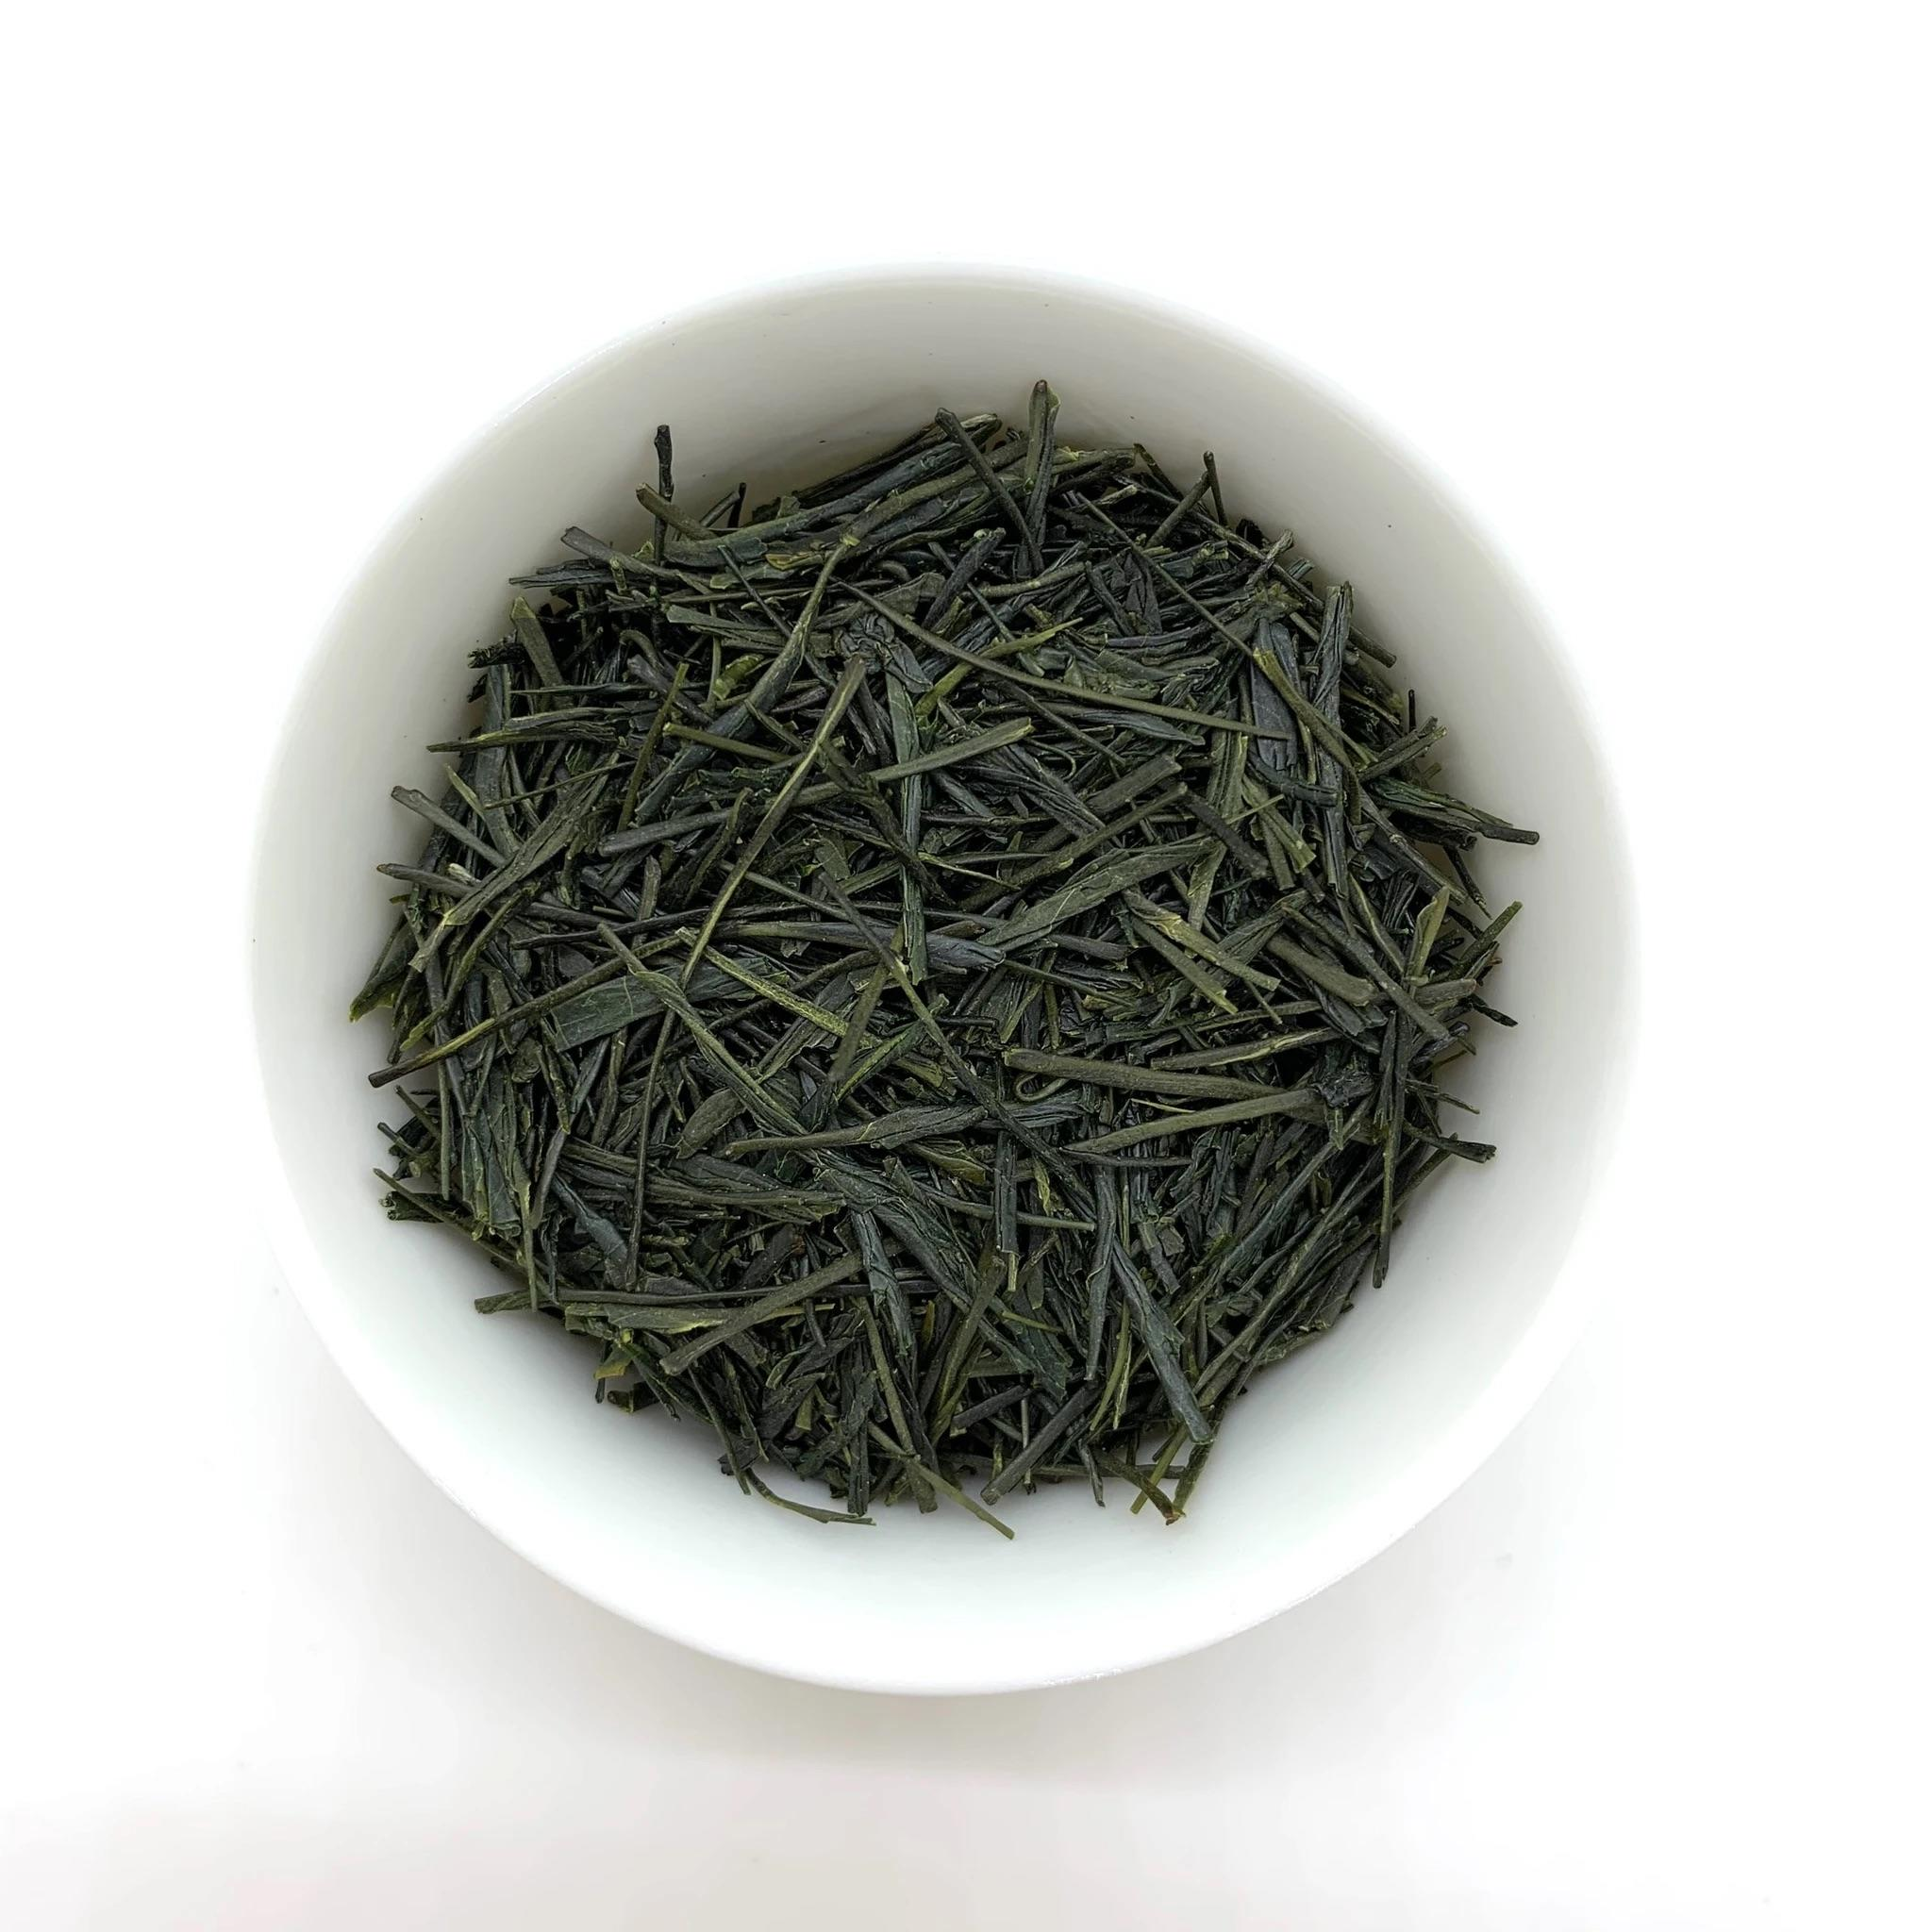 Oscar Brekell's Tea Selection ザ ファースト 煎茶